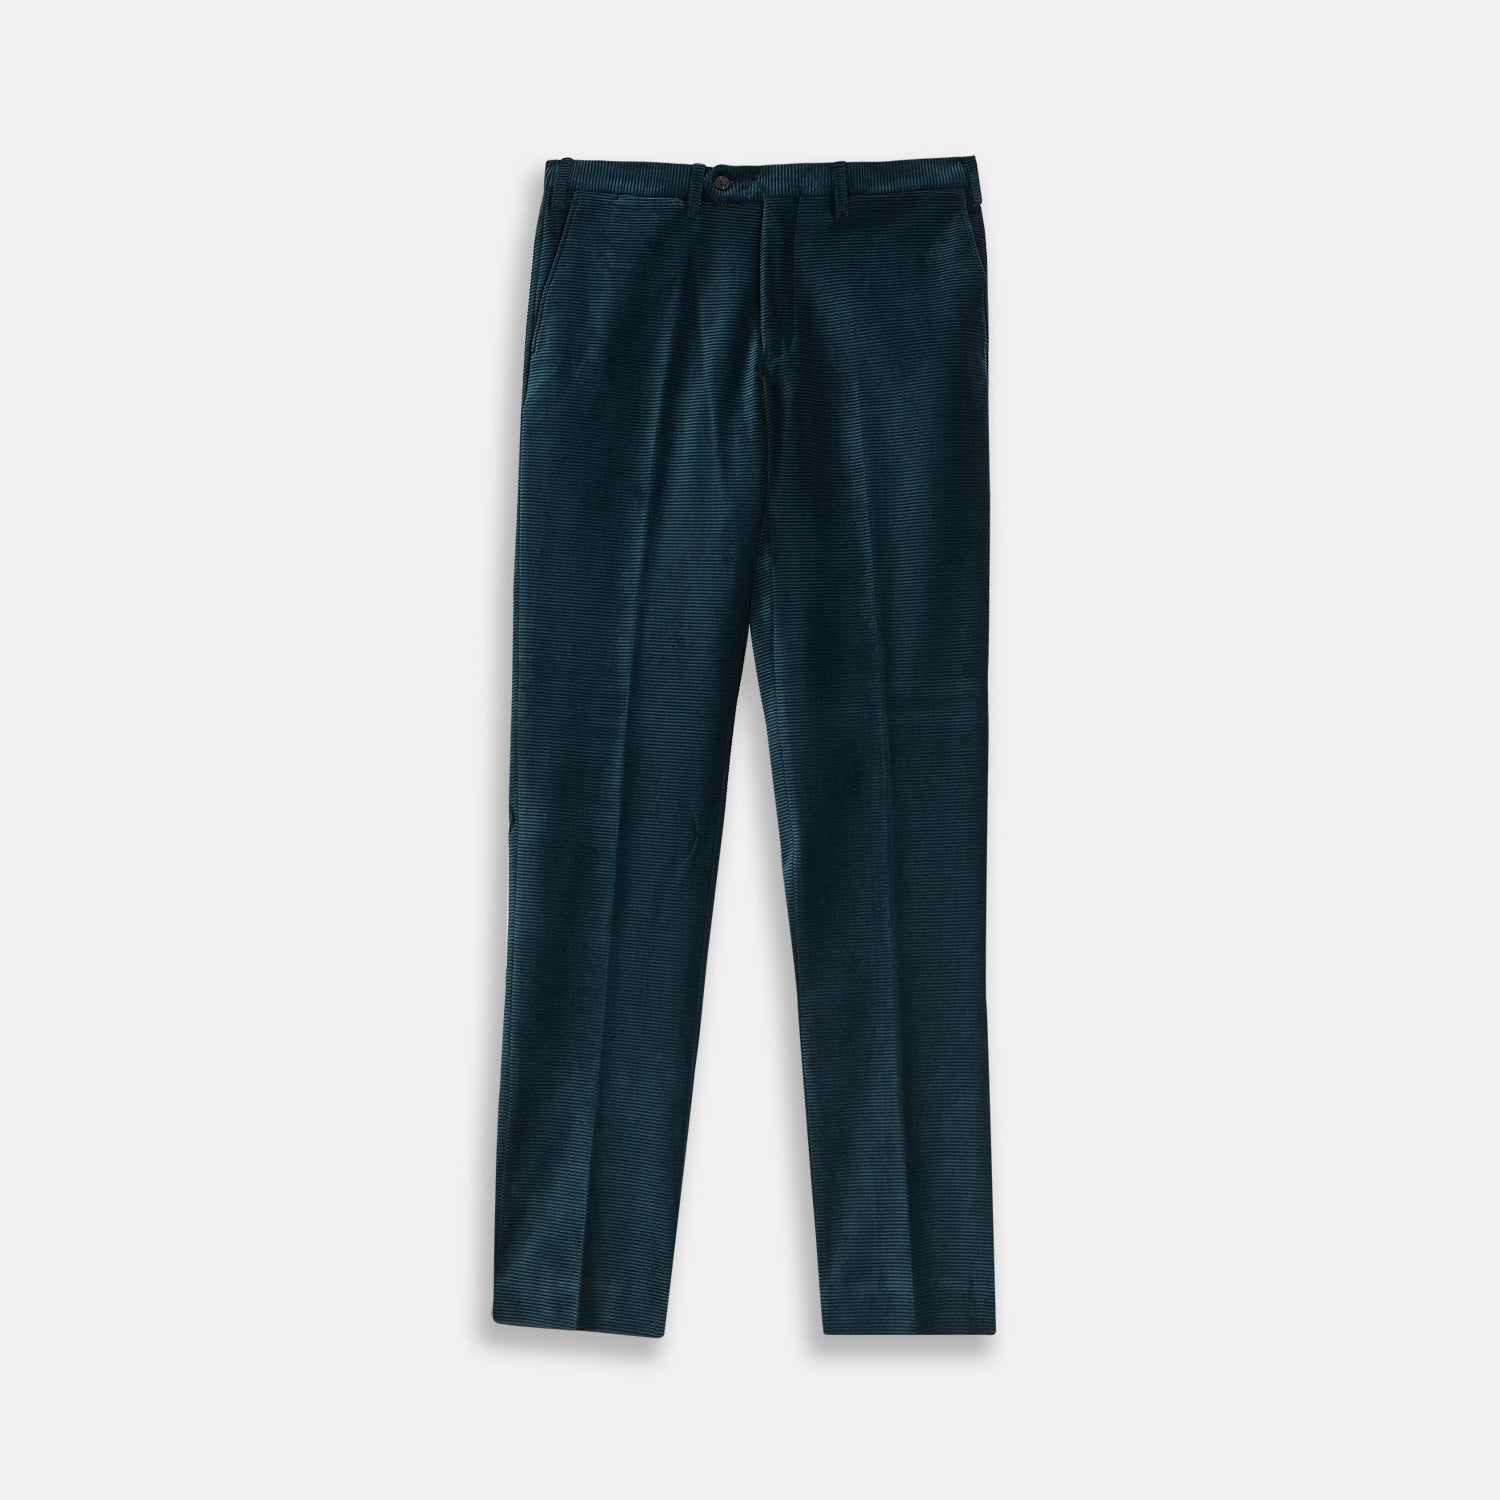 Forest Green Horizontal Cord Trousers - 36 from Turnbull & Asser